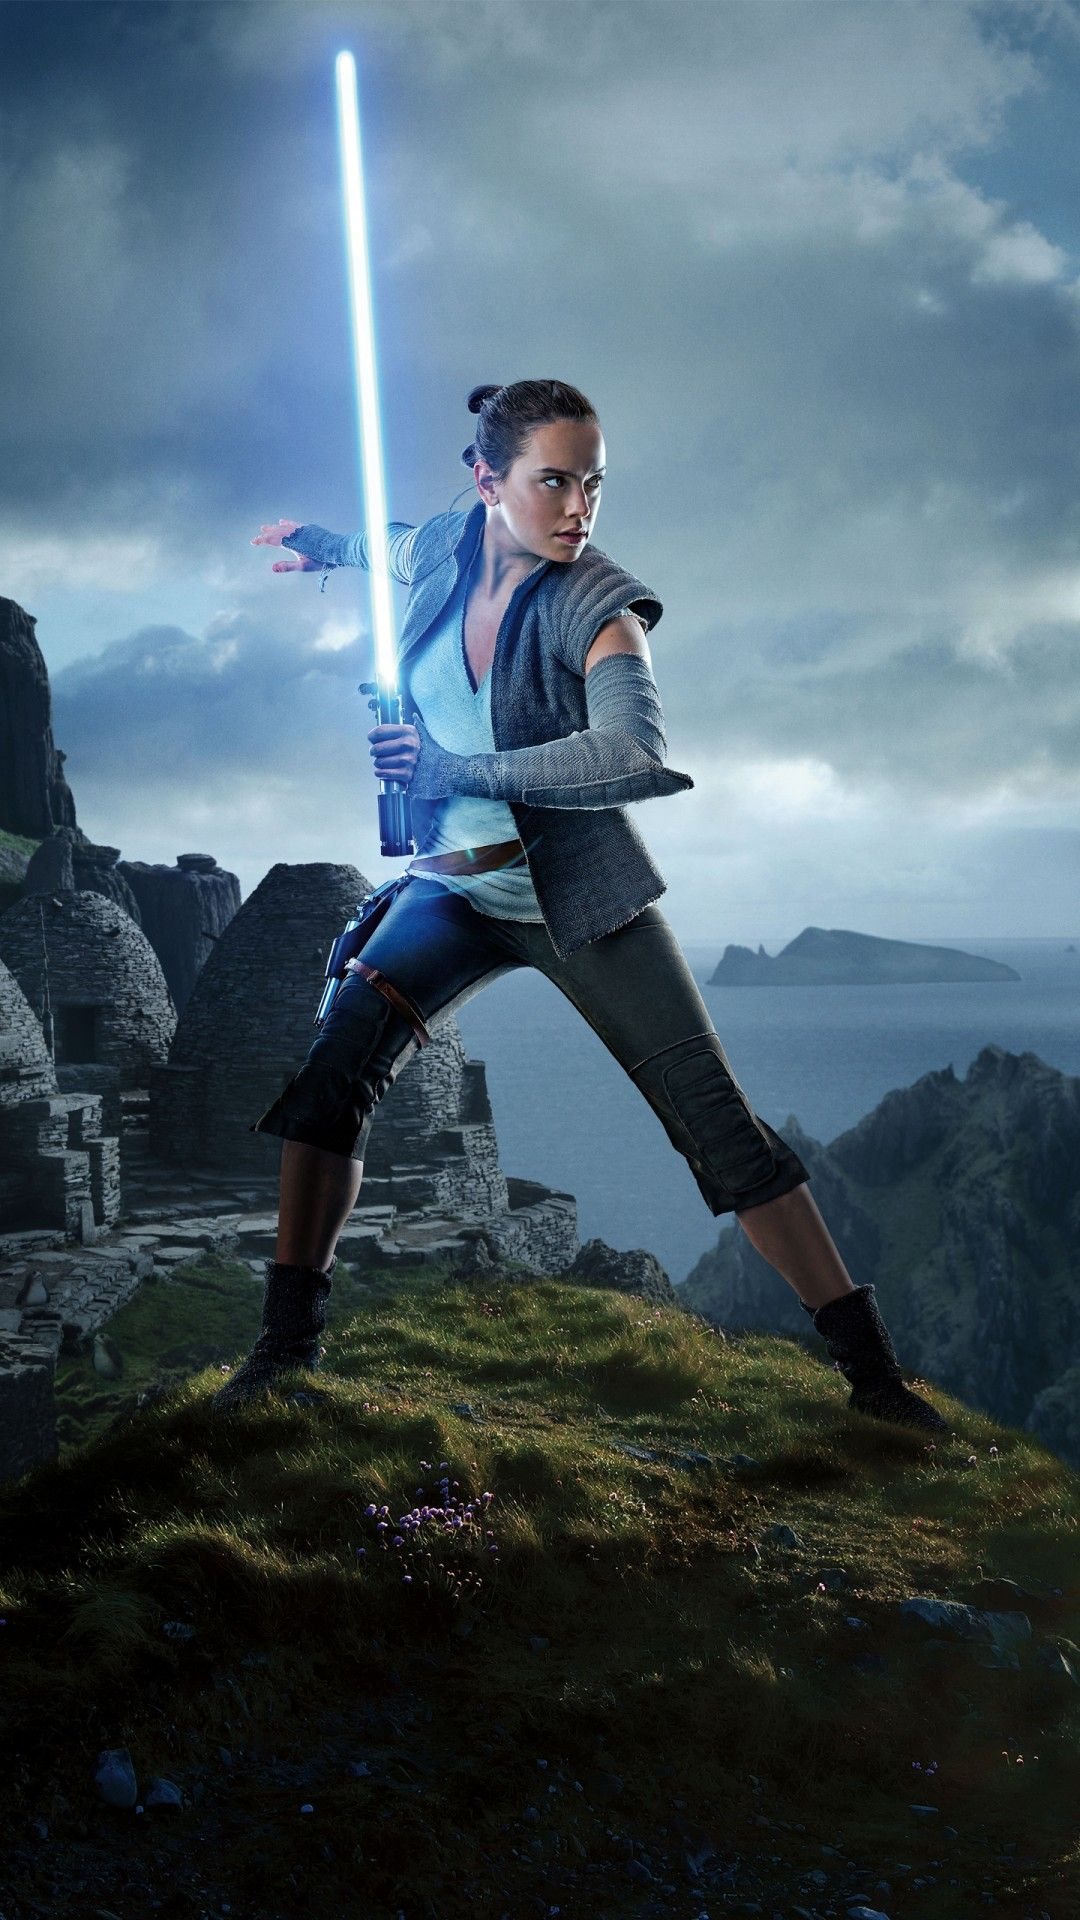 Rey (Star Wars) - Tap to see more exciting Star Wars wallpapers! - @mobile9